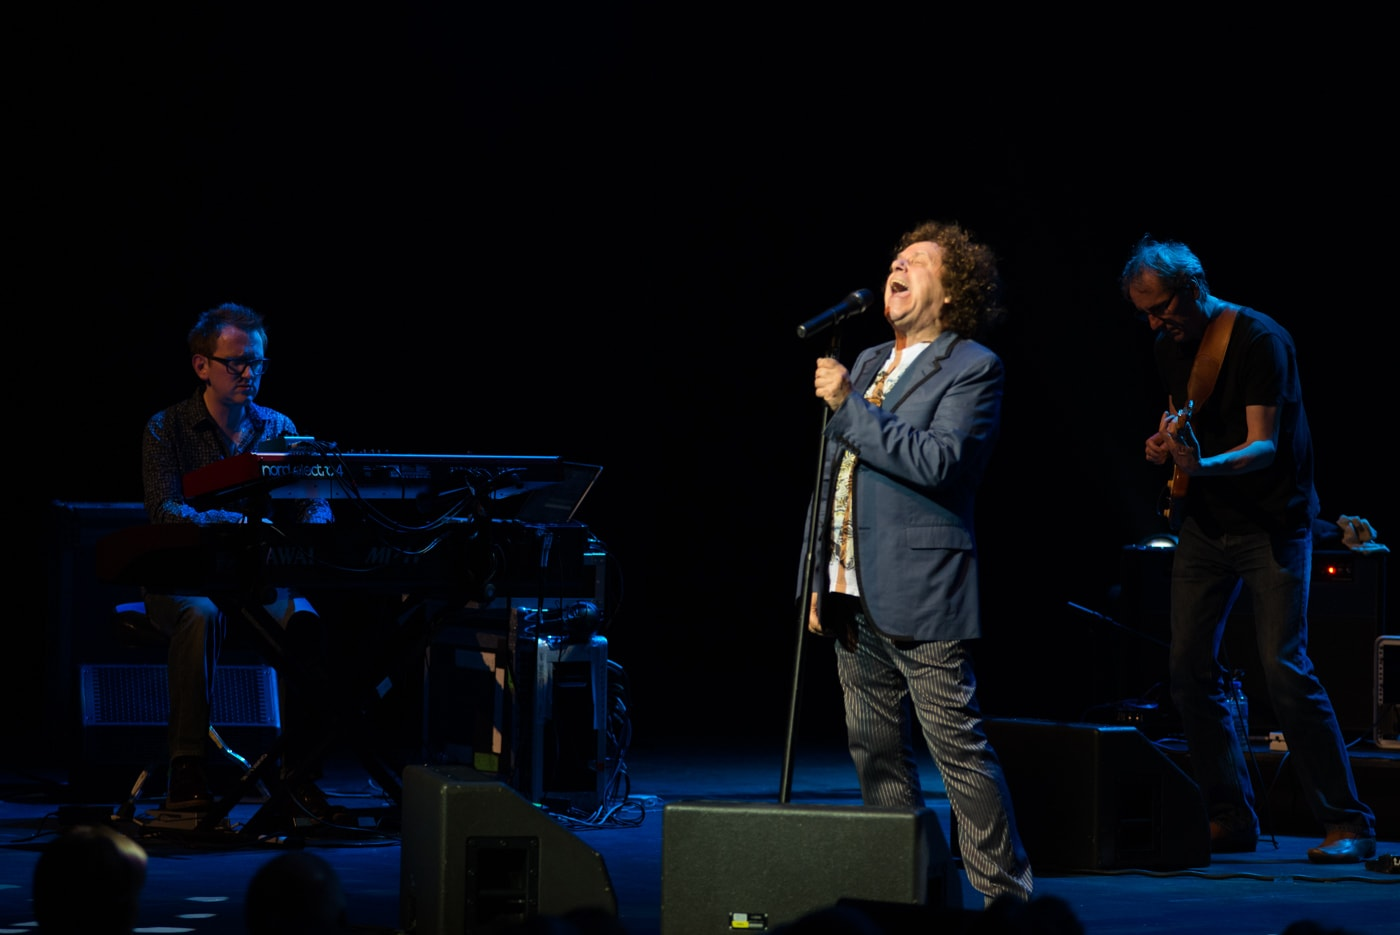 Leo Sayer at Bord Gais Energy Theatre by Sean Smyth (16-10-15) (31 of 129)